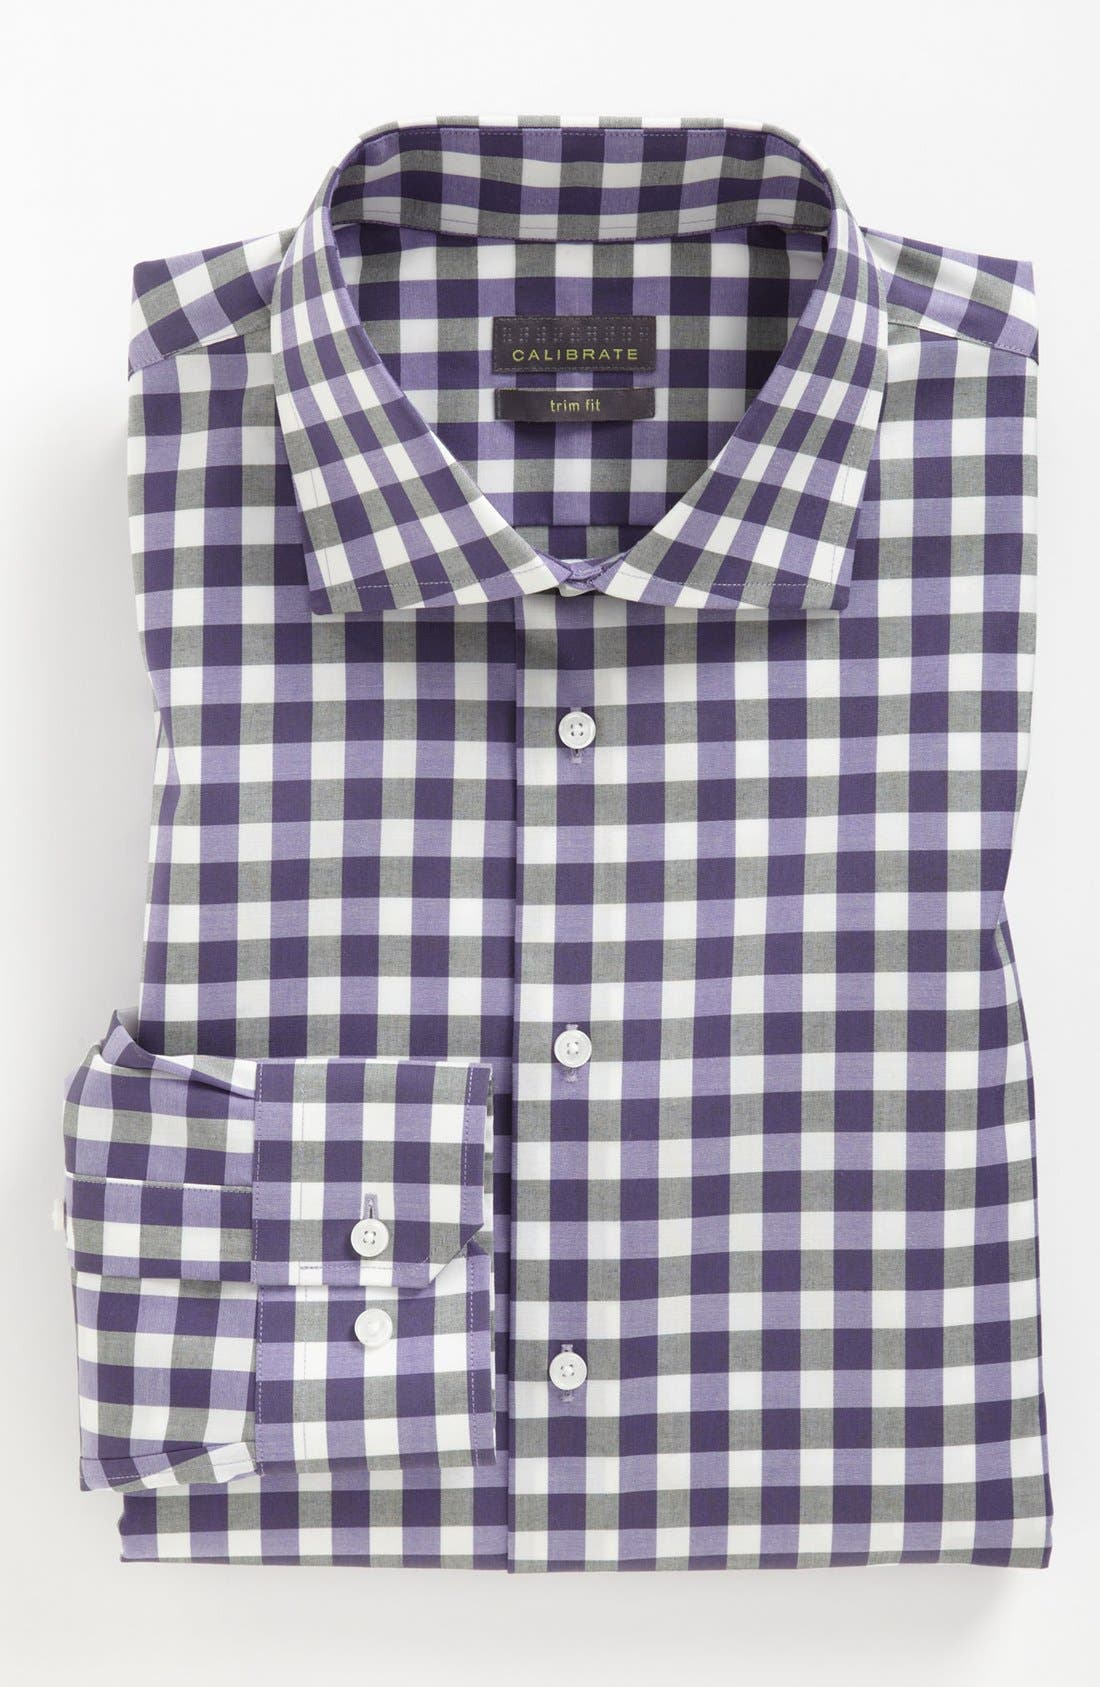 Alternate Image 1 Selected - Calibrate Trim Fit Non-Iron Gingham Dress Shirt